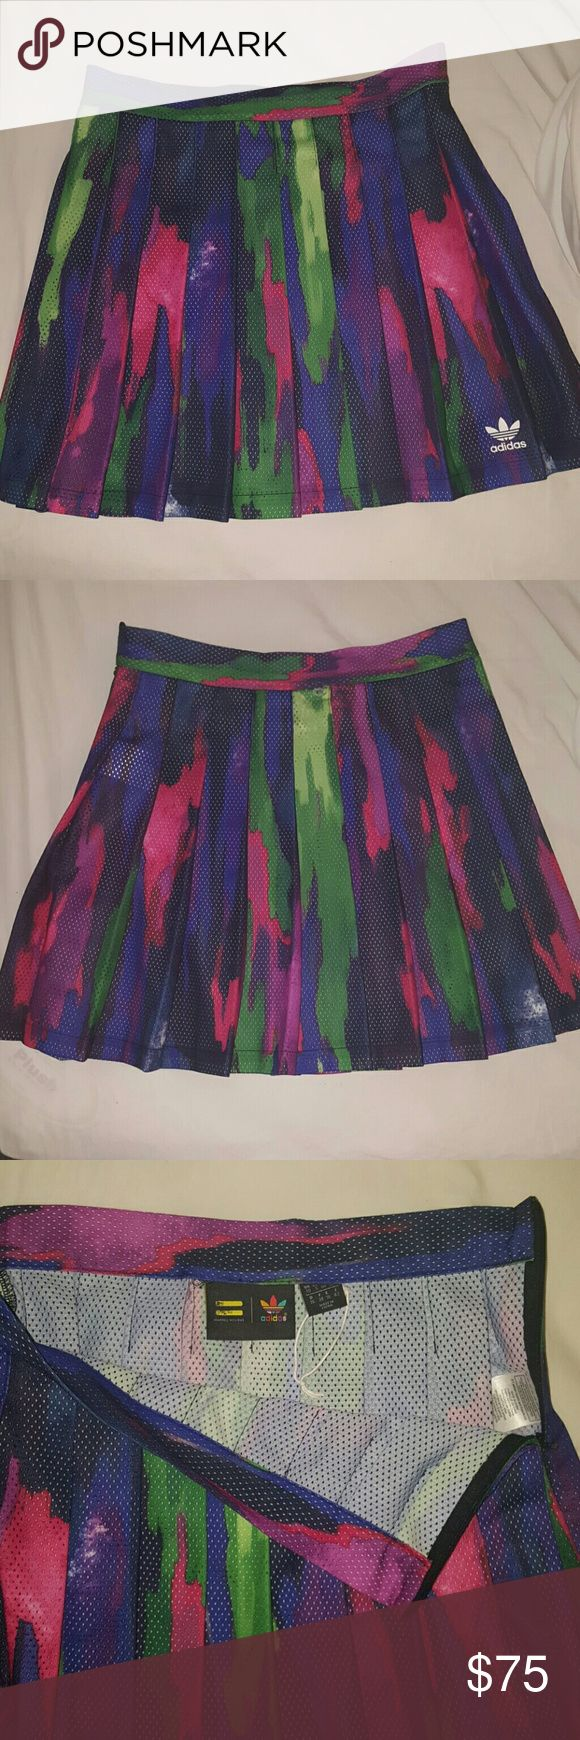 Pharrel for Adidas Camouflage Tree Skirt Pharrel Williams for Adidas Multi Colored Camouflage Skirt  Womens sized small  Has A-line sports cut This is brand new with no tags Adidas Skirts A-Line or Full